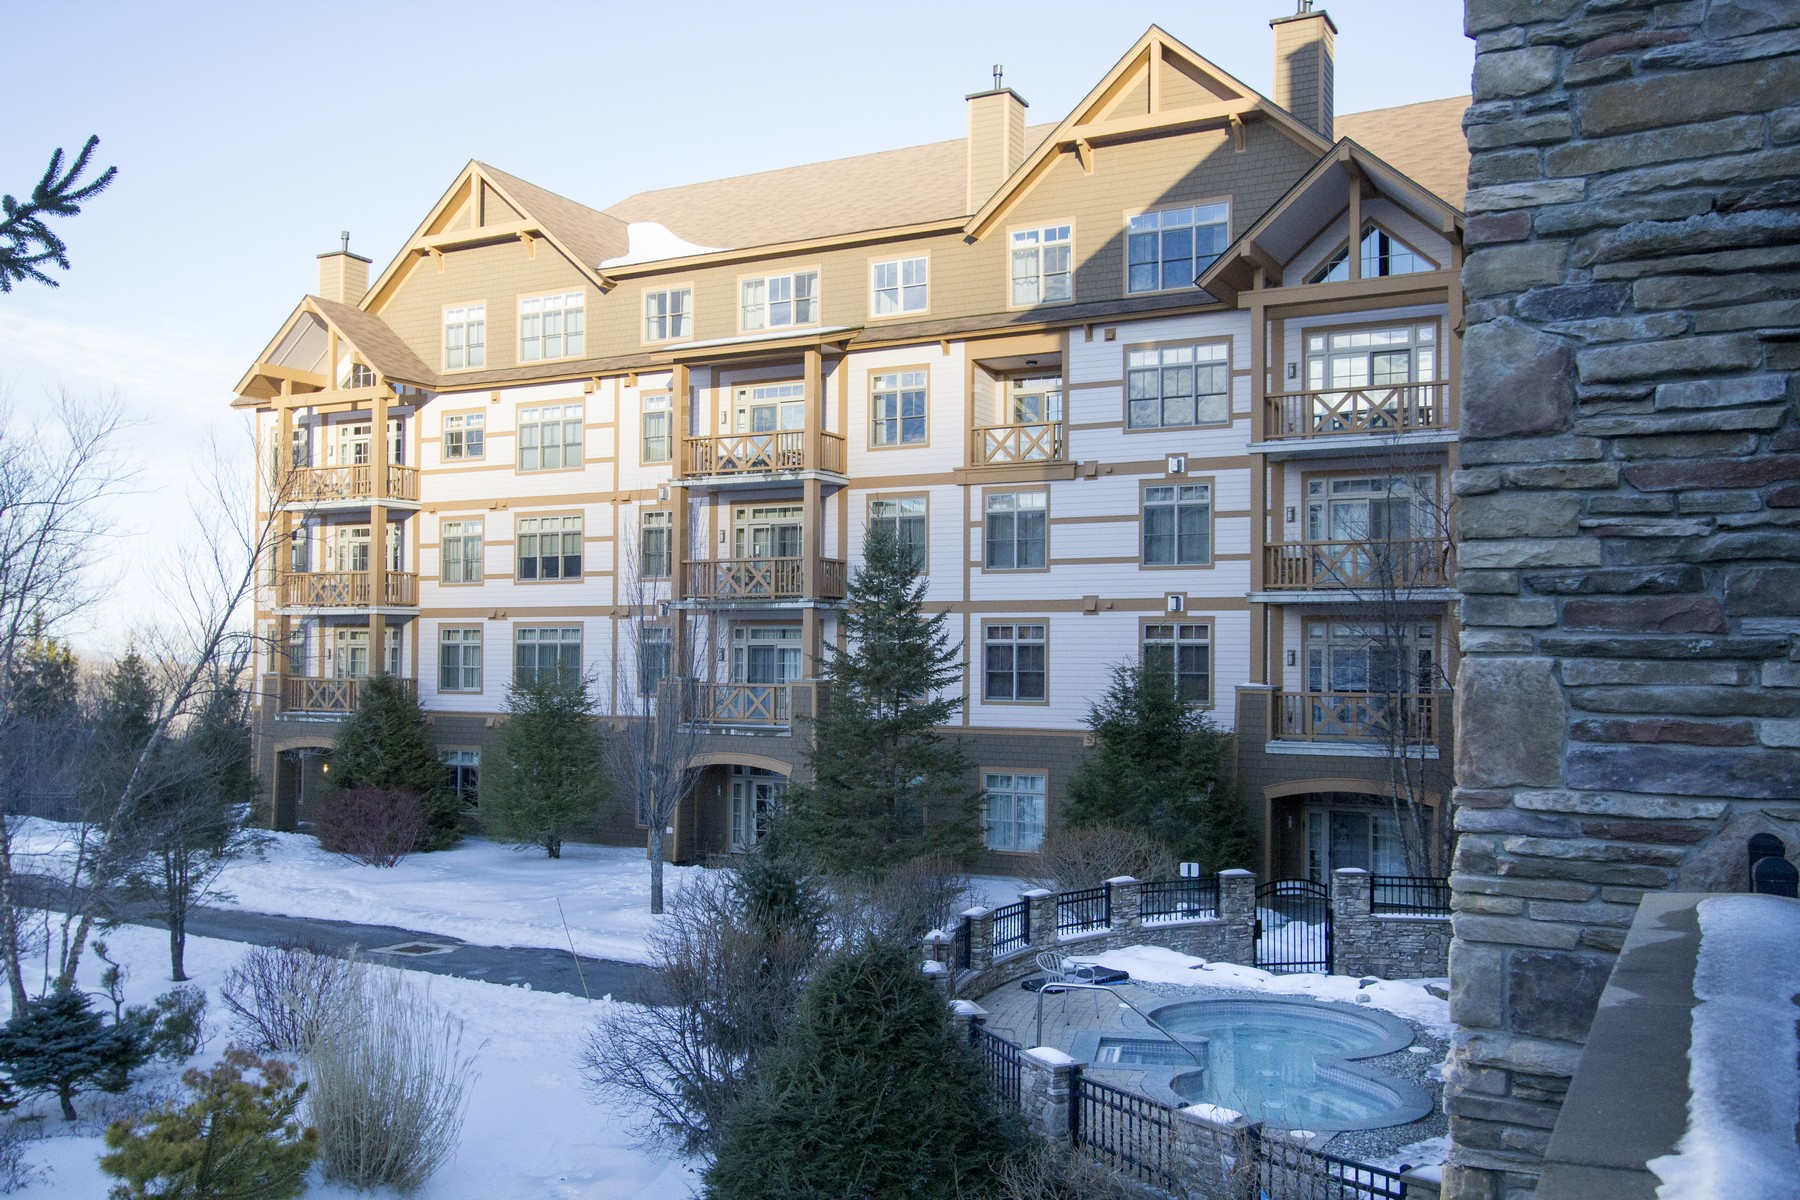 Condominiums for Sale at 78 Middle Ridge Road, Stratton 78 Middle Ridge Rd Stratton, Vermont 05155 United States